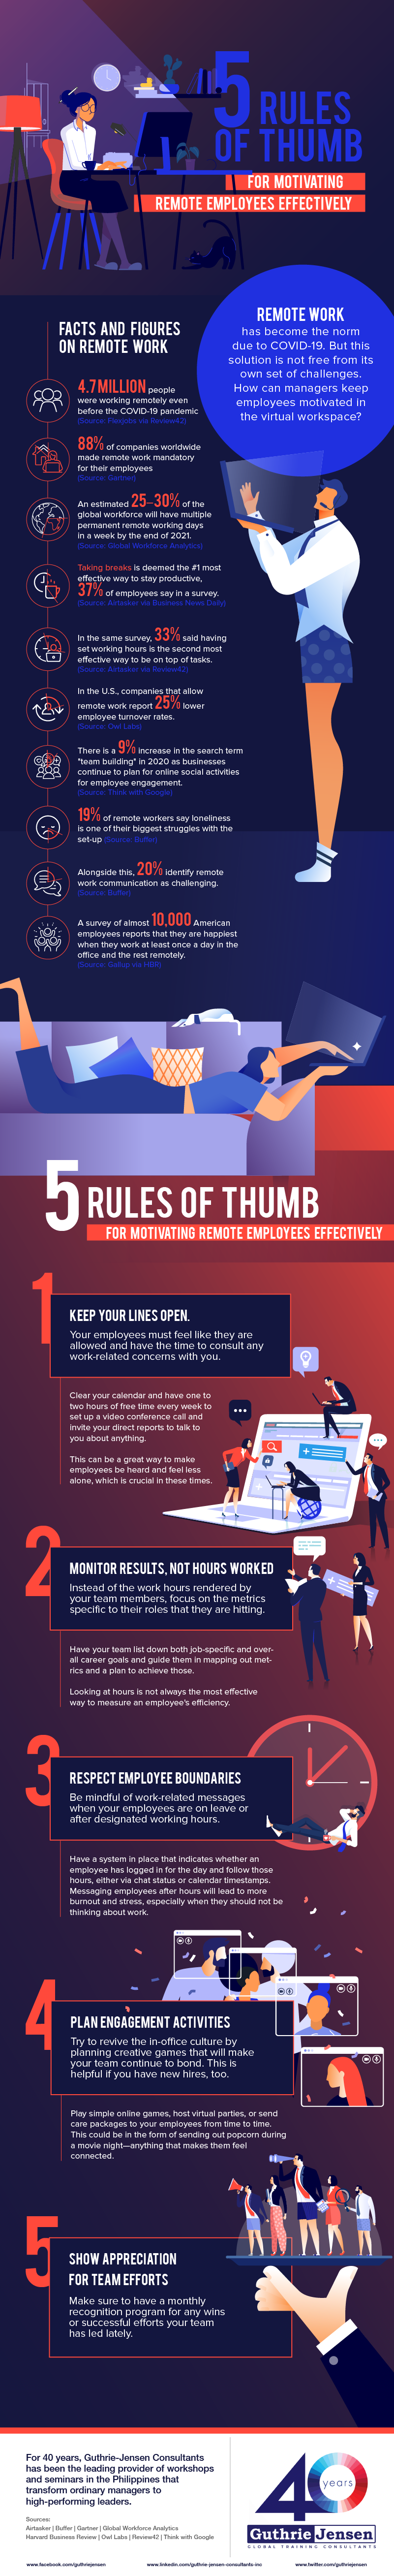 [Infographic] 5 Rules of Thumb for Motivating Remote Employees Effectively